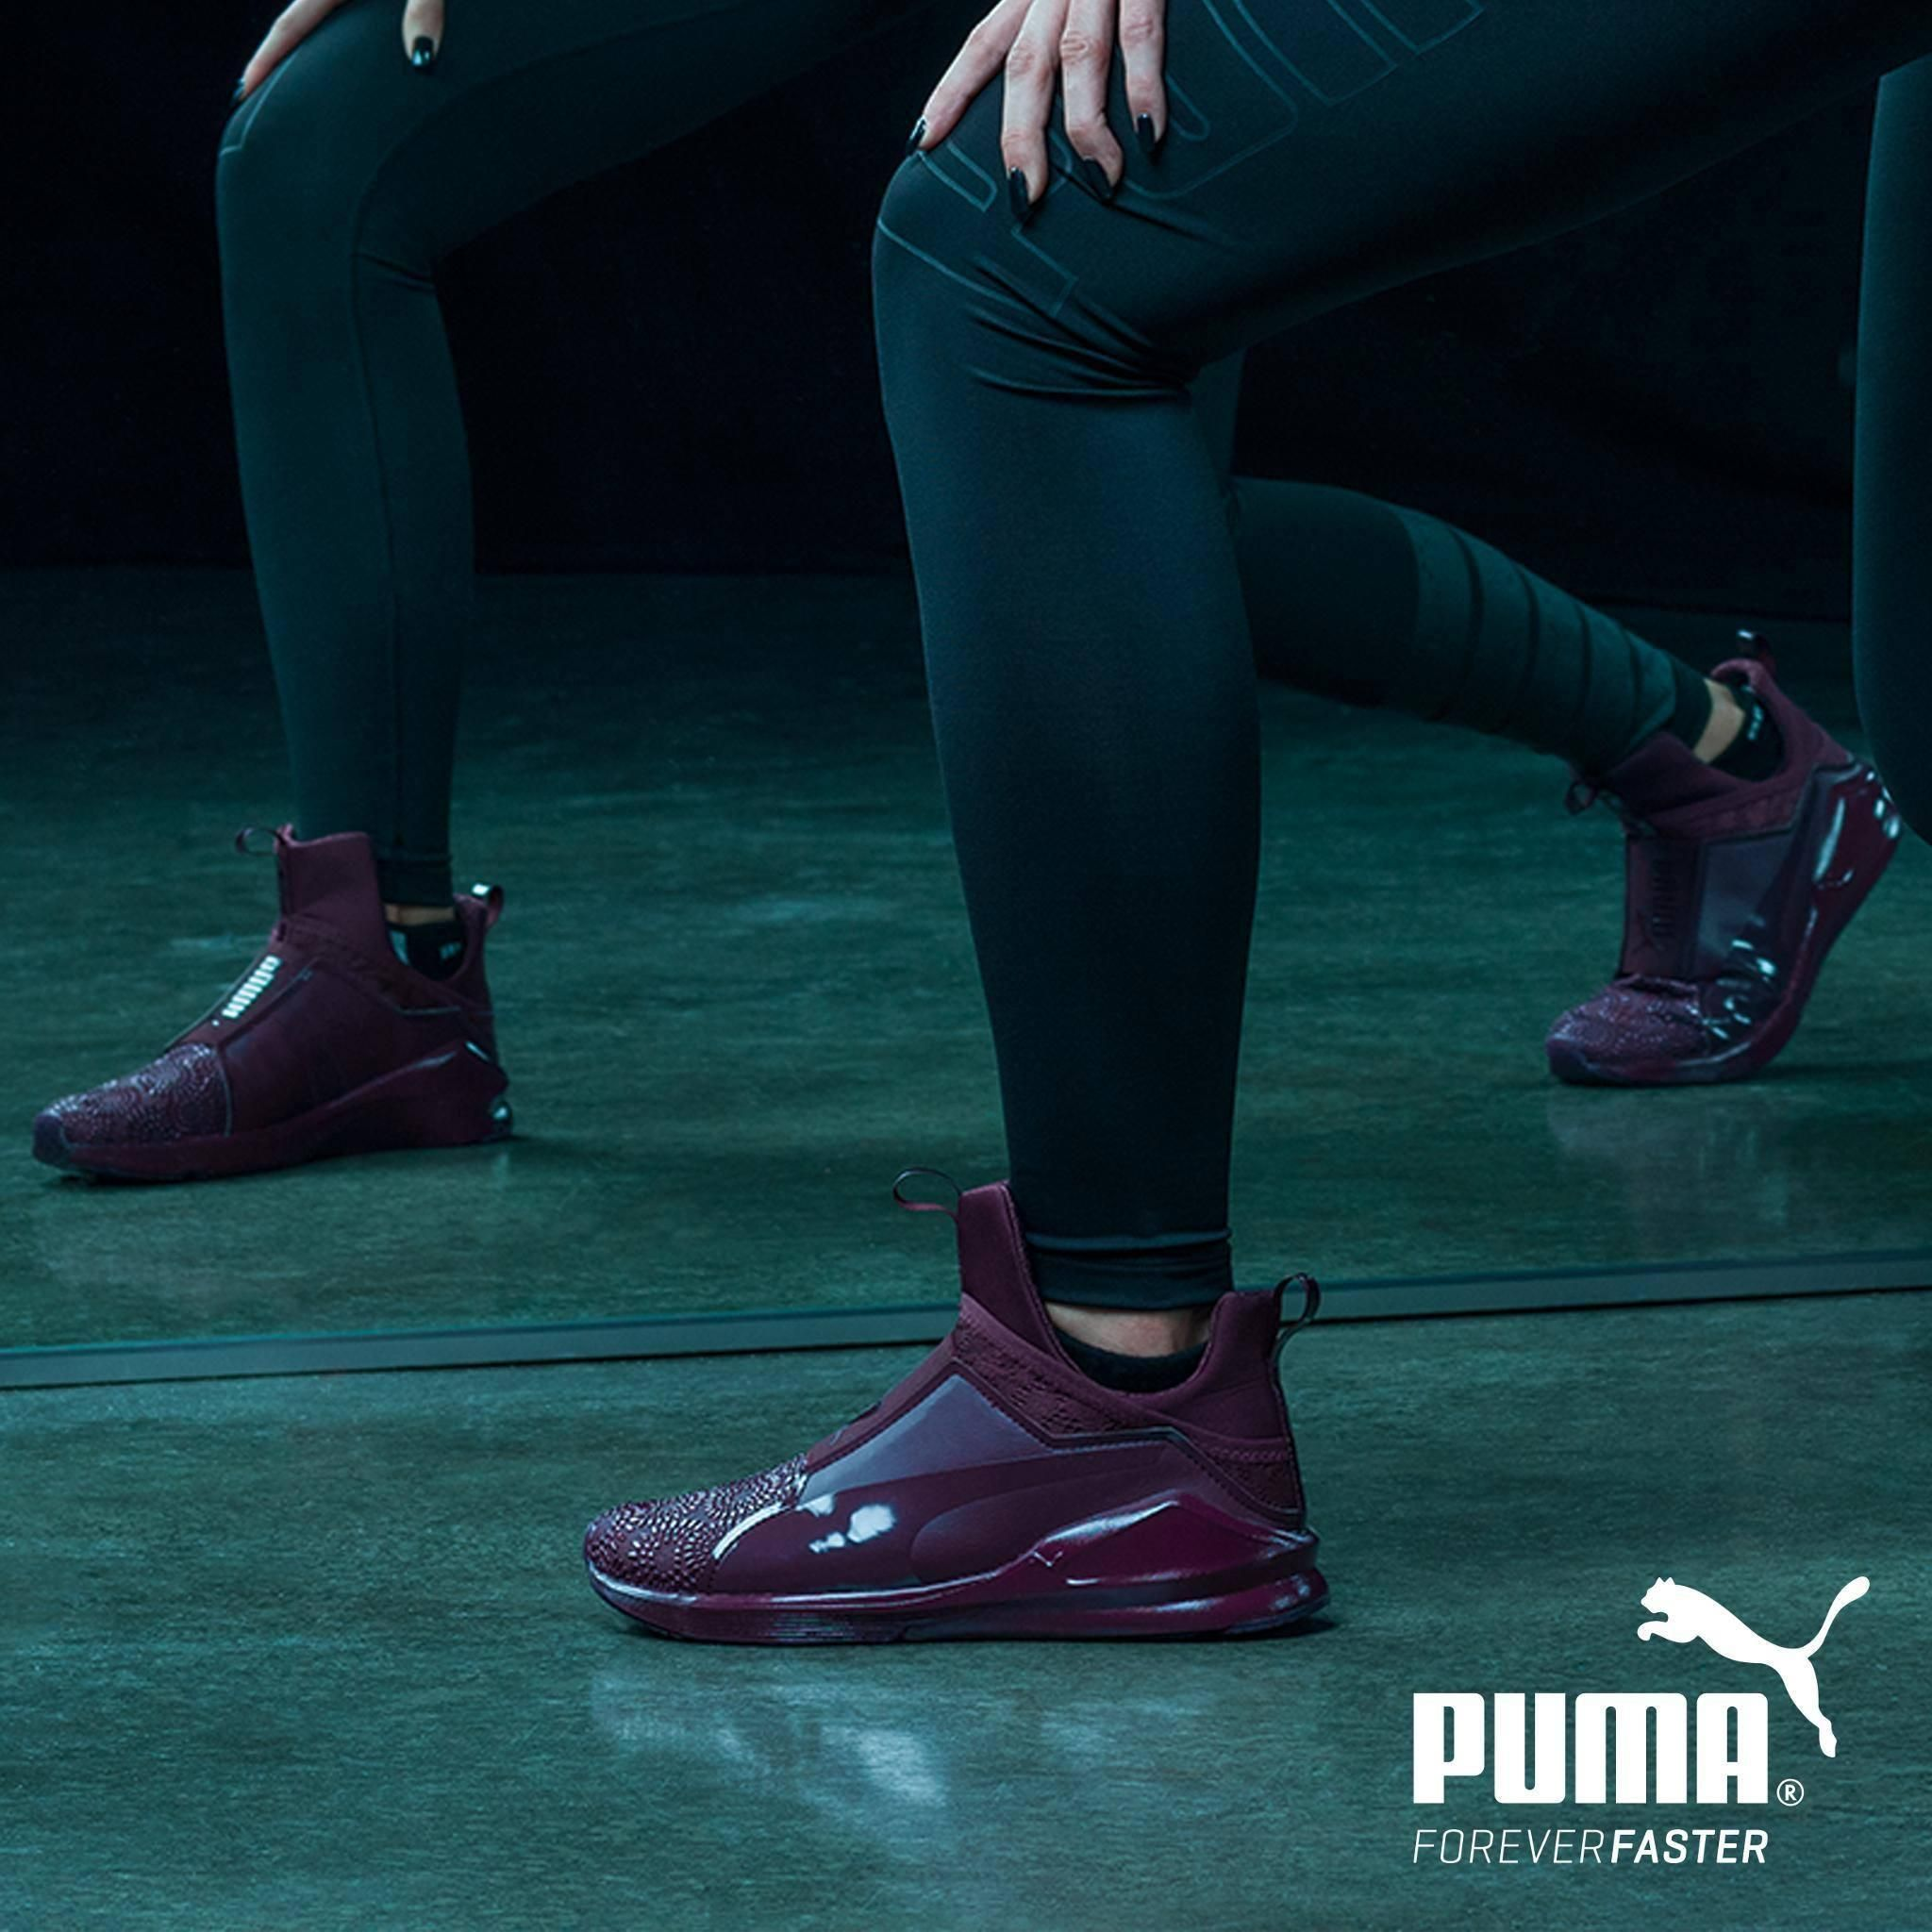 Womens training shoes, Puma outfit